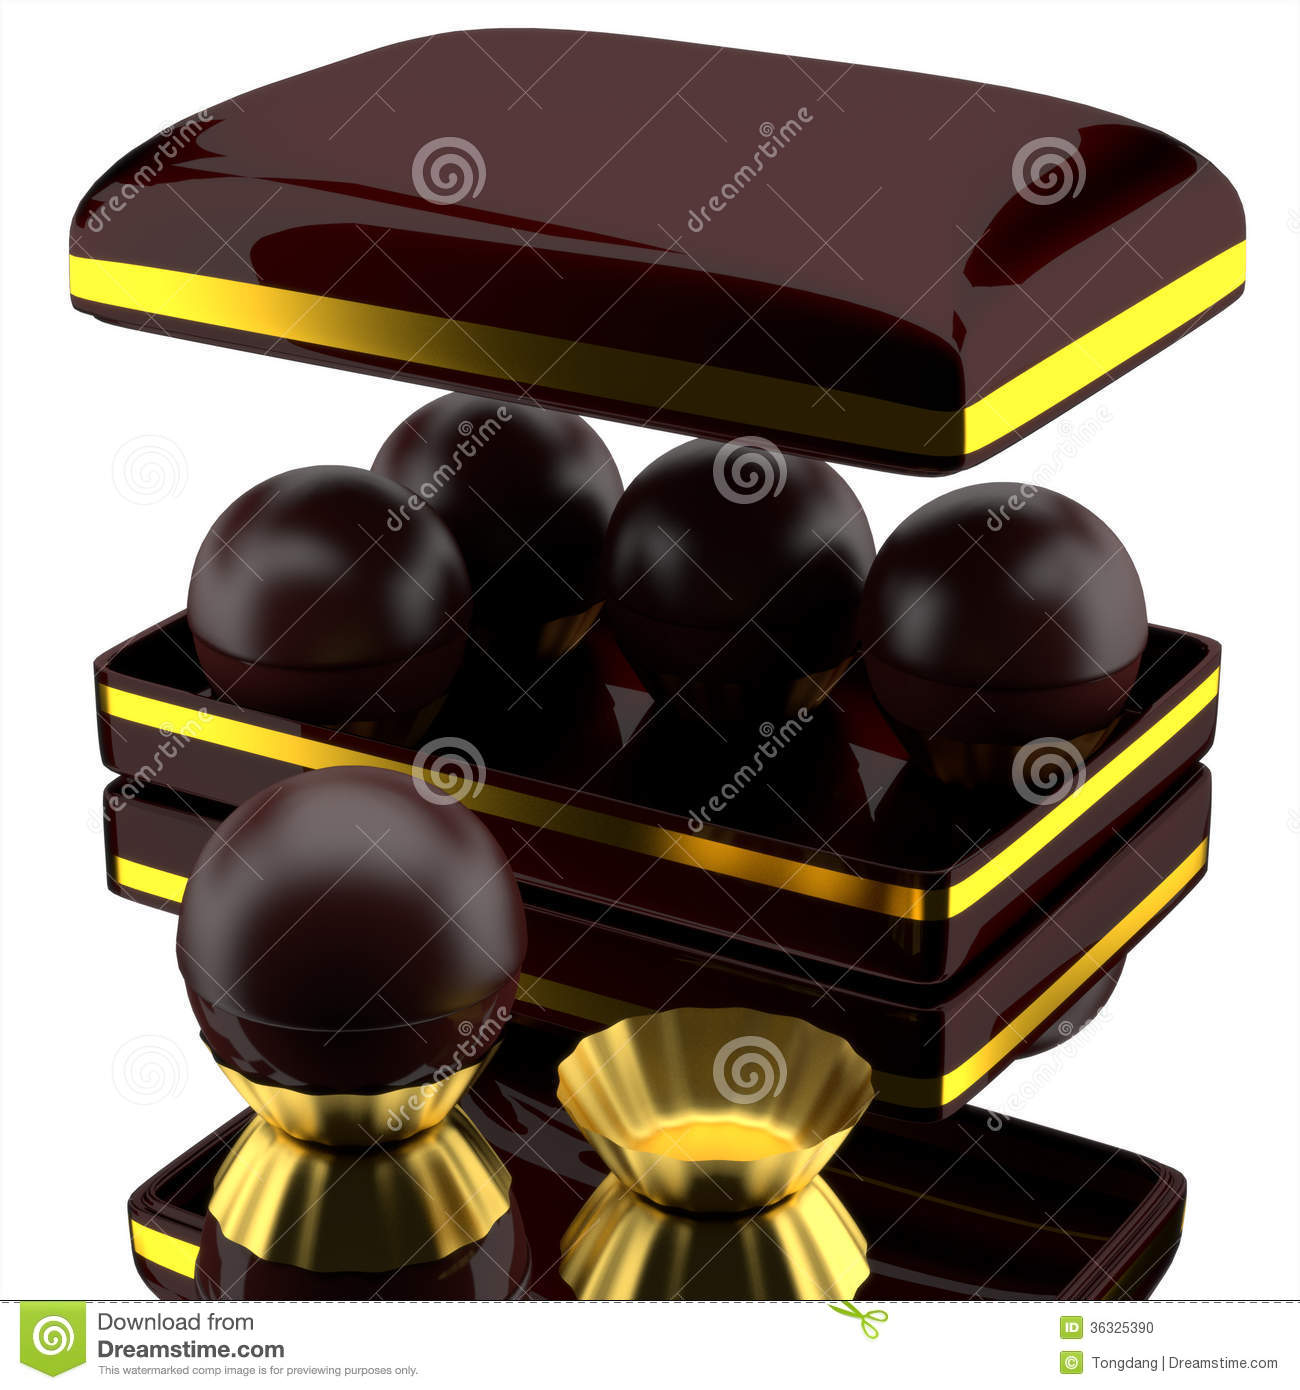 Box Of Chocolates. Stock Photo - Image: 36325390